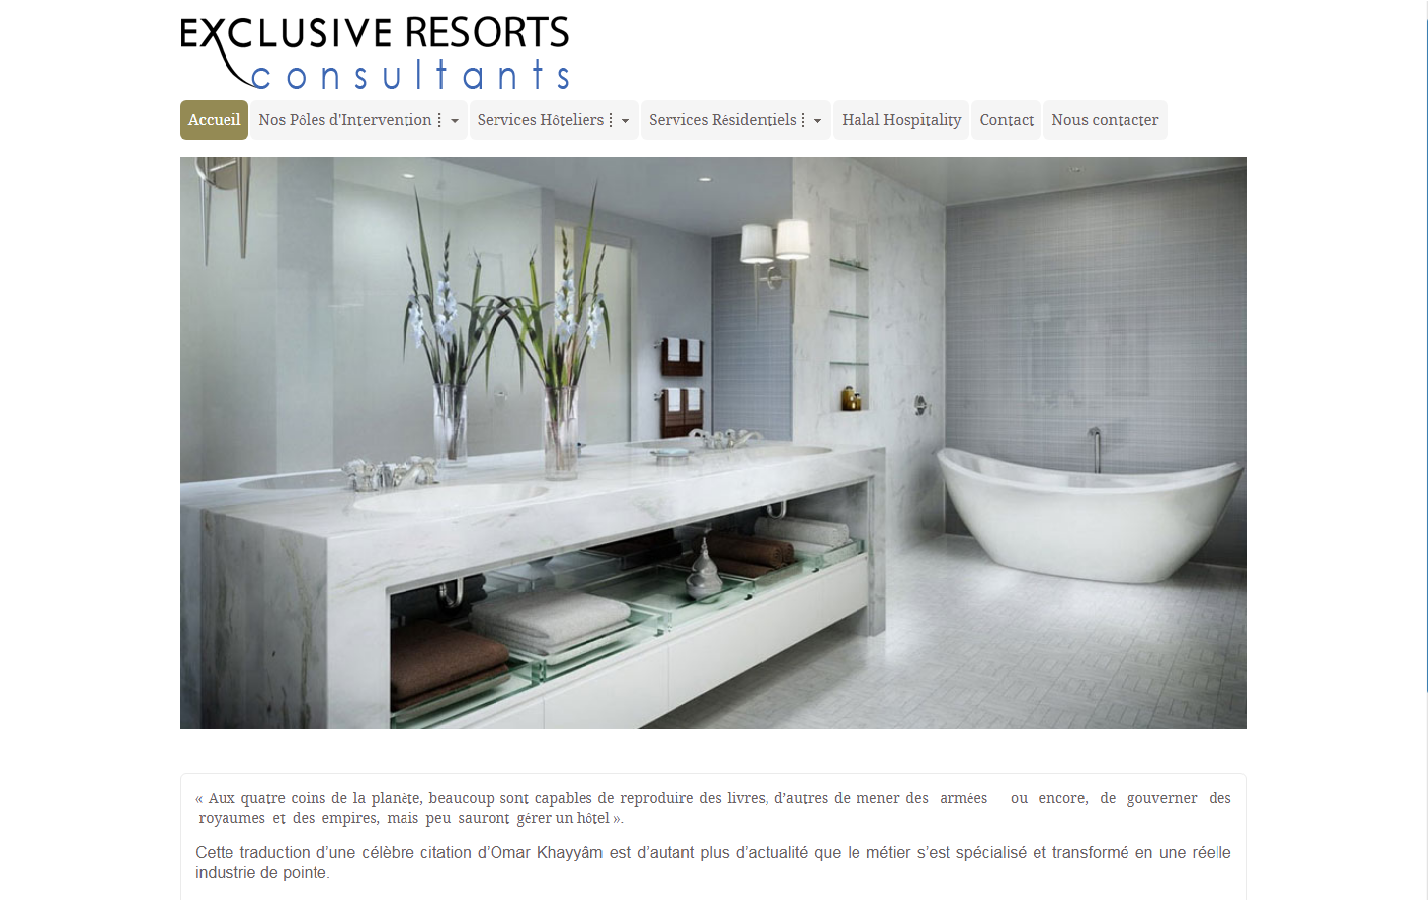 web/exclusiveresorts_ma_1541163491.png